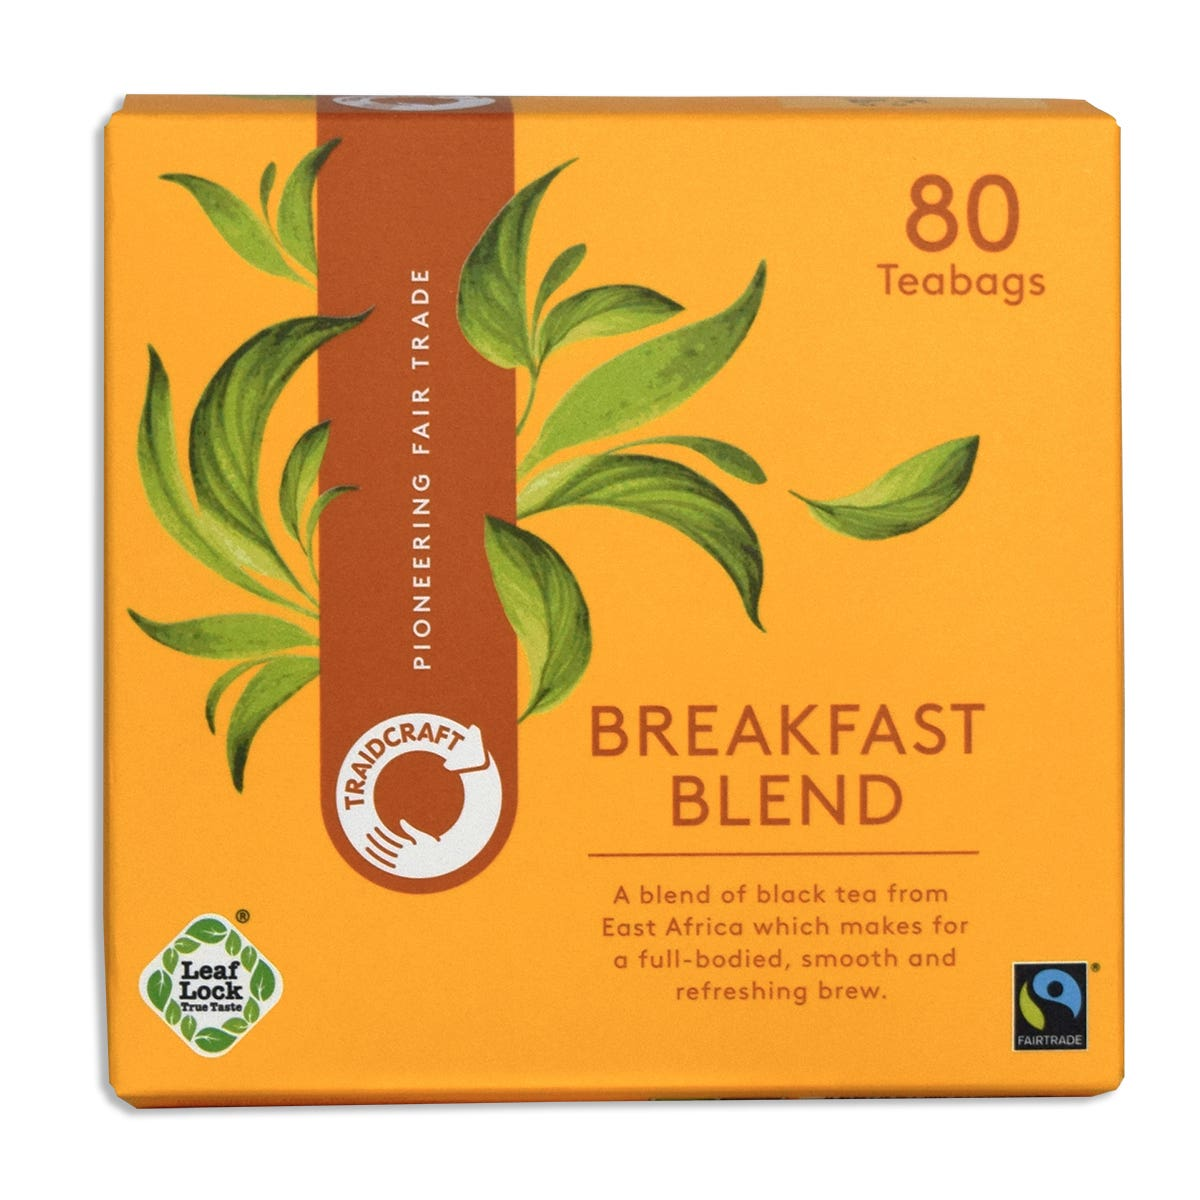 Traidcraft Breakfast Blend Teabags (6x80 bags) CASE